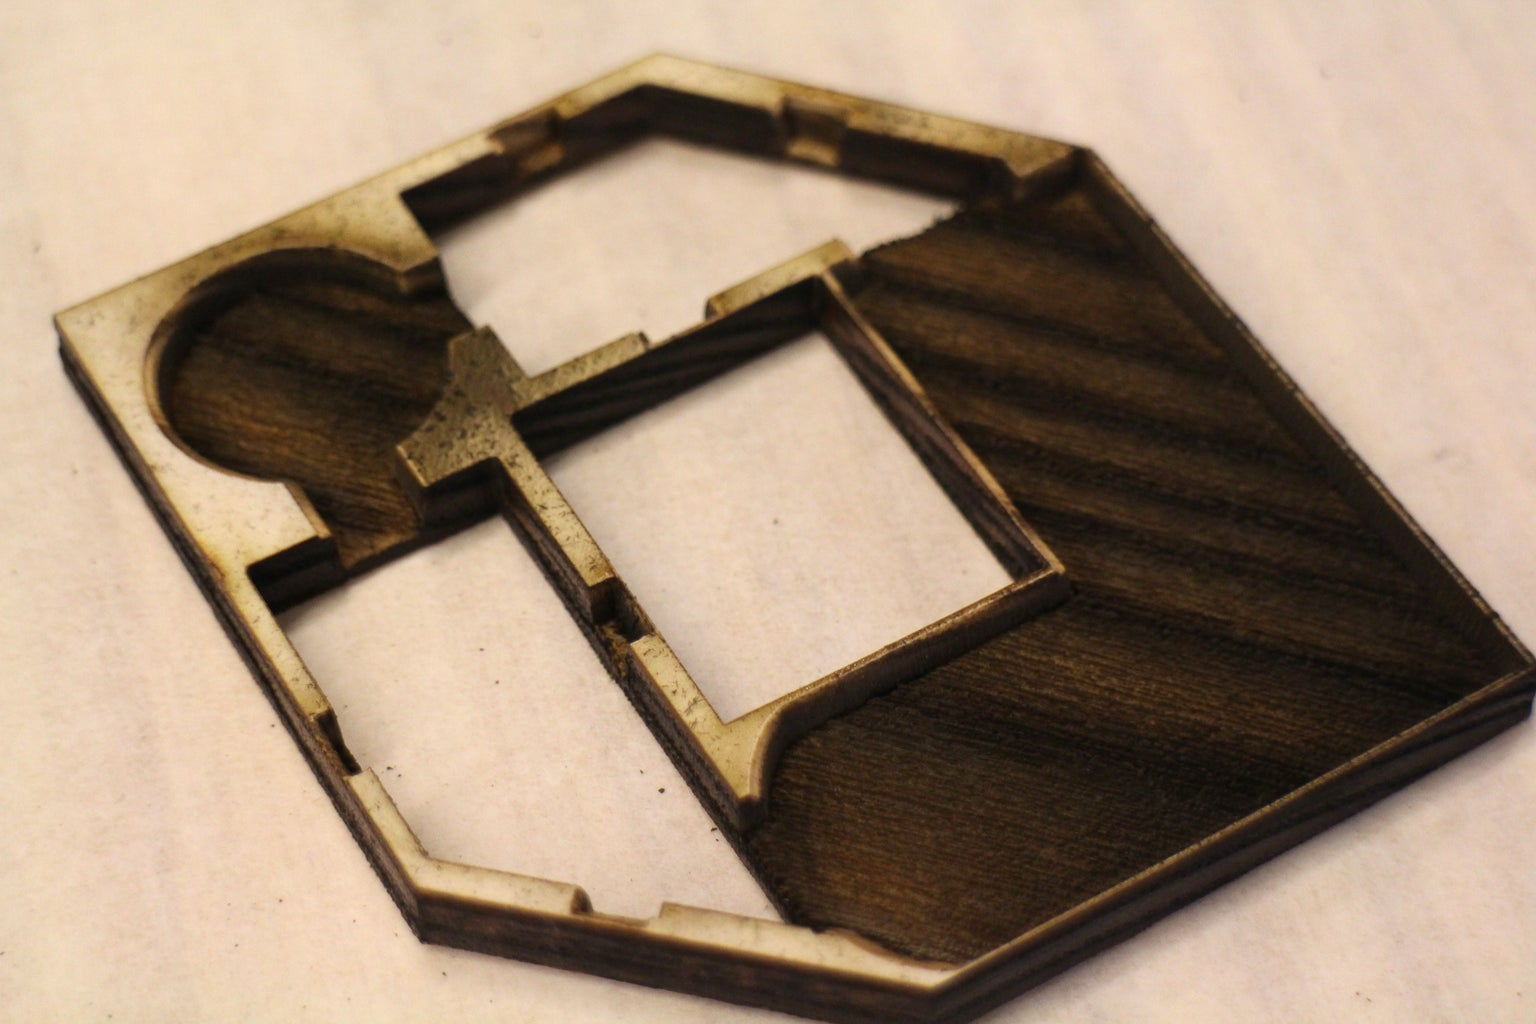 Engrave and Cut Brooch